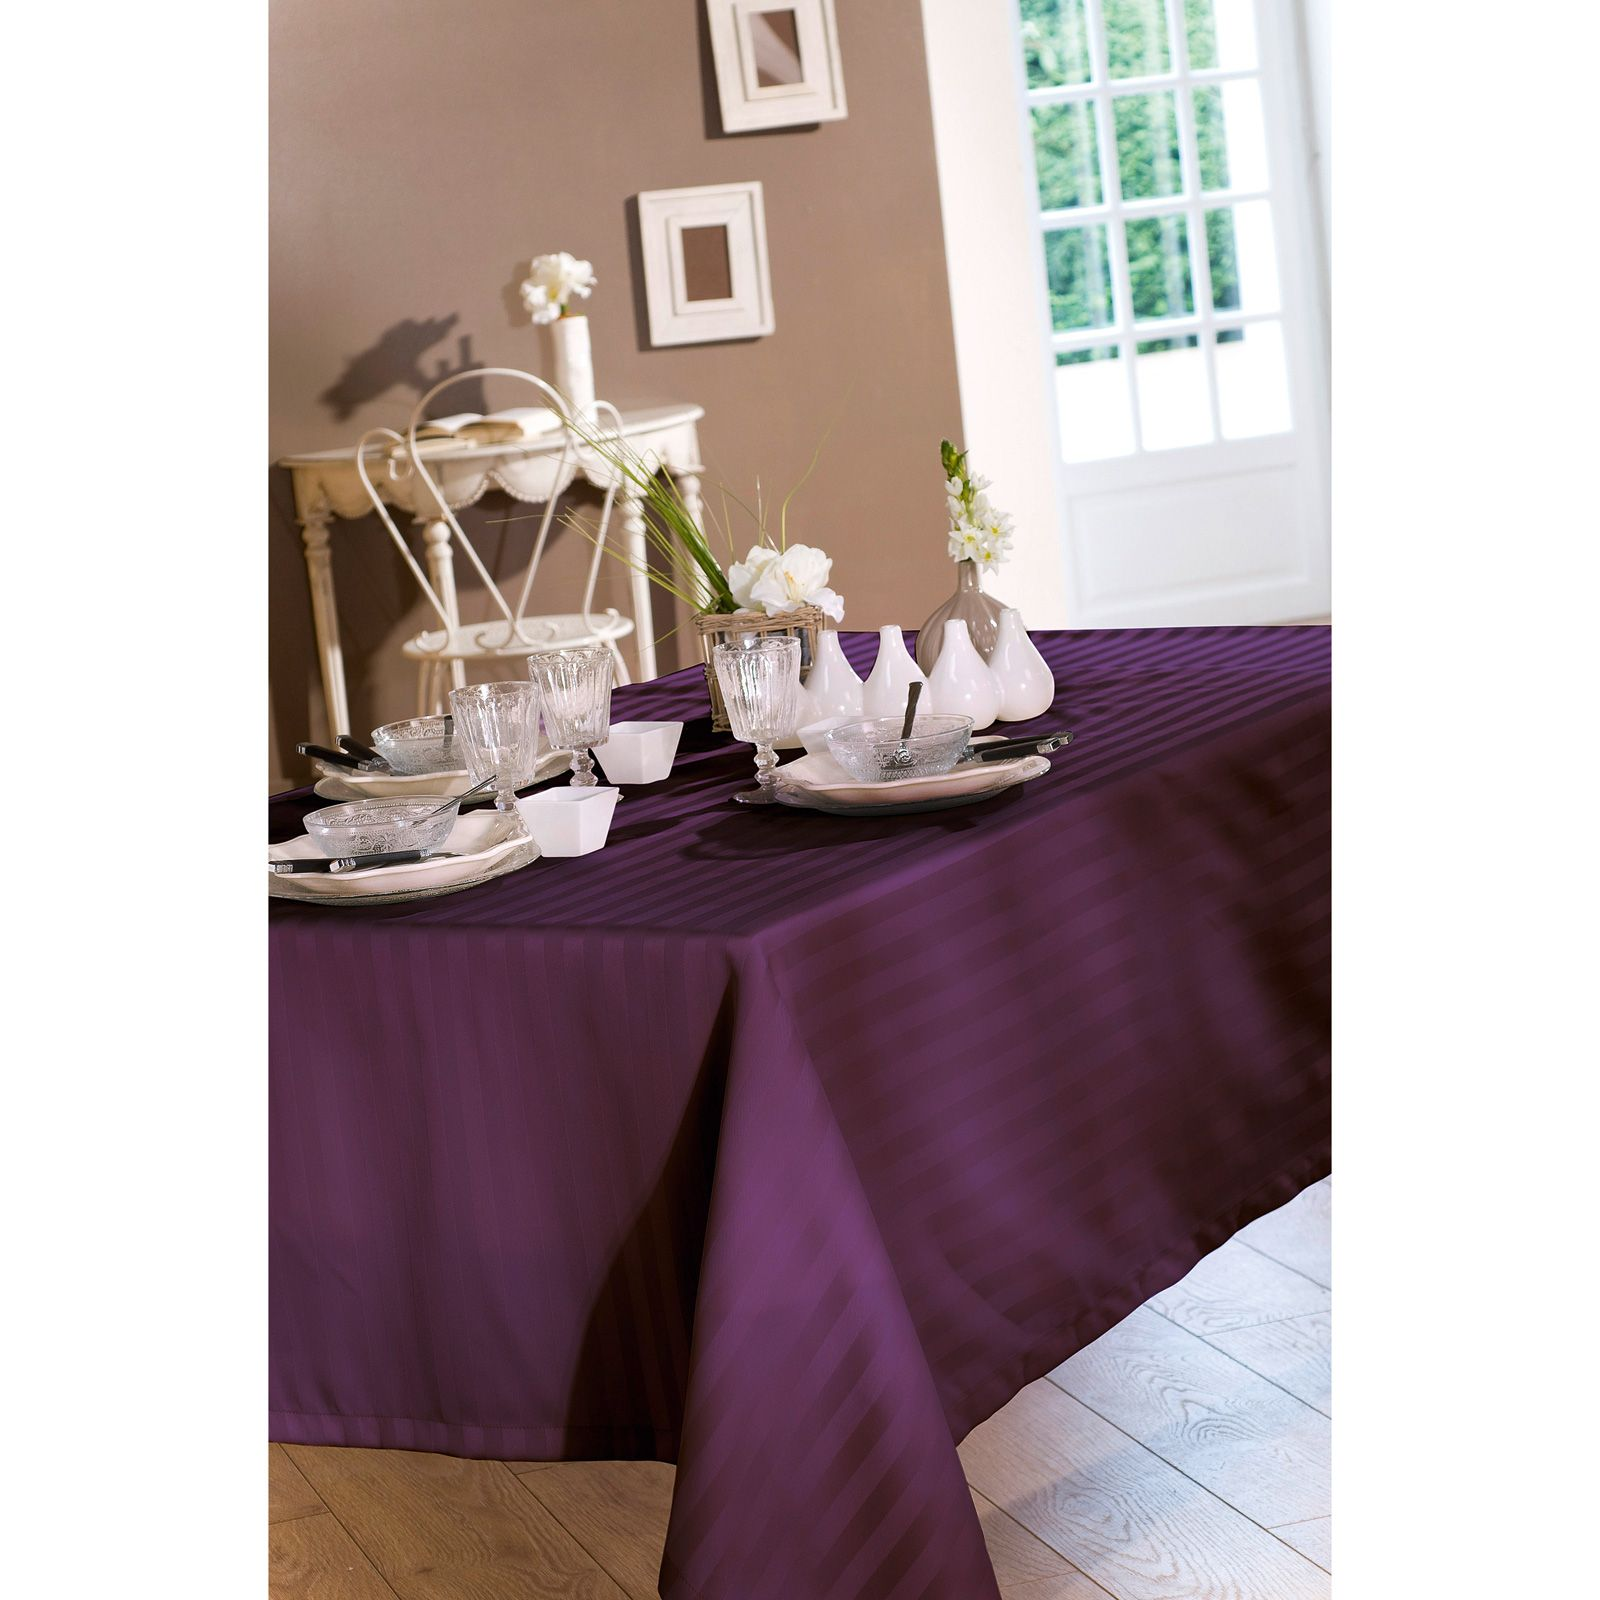 stunning nydel ovale opra nappe aubergine with nappe pour table ovale nydel. Black Bedroom Furniture Sets. Home Design Ideas